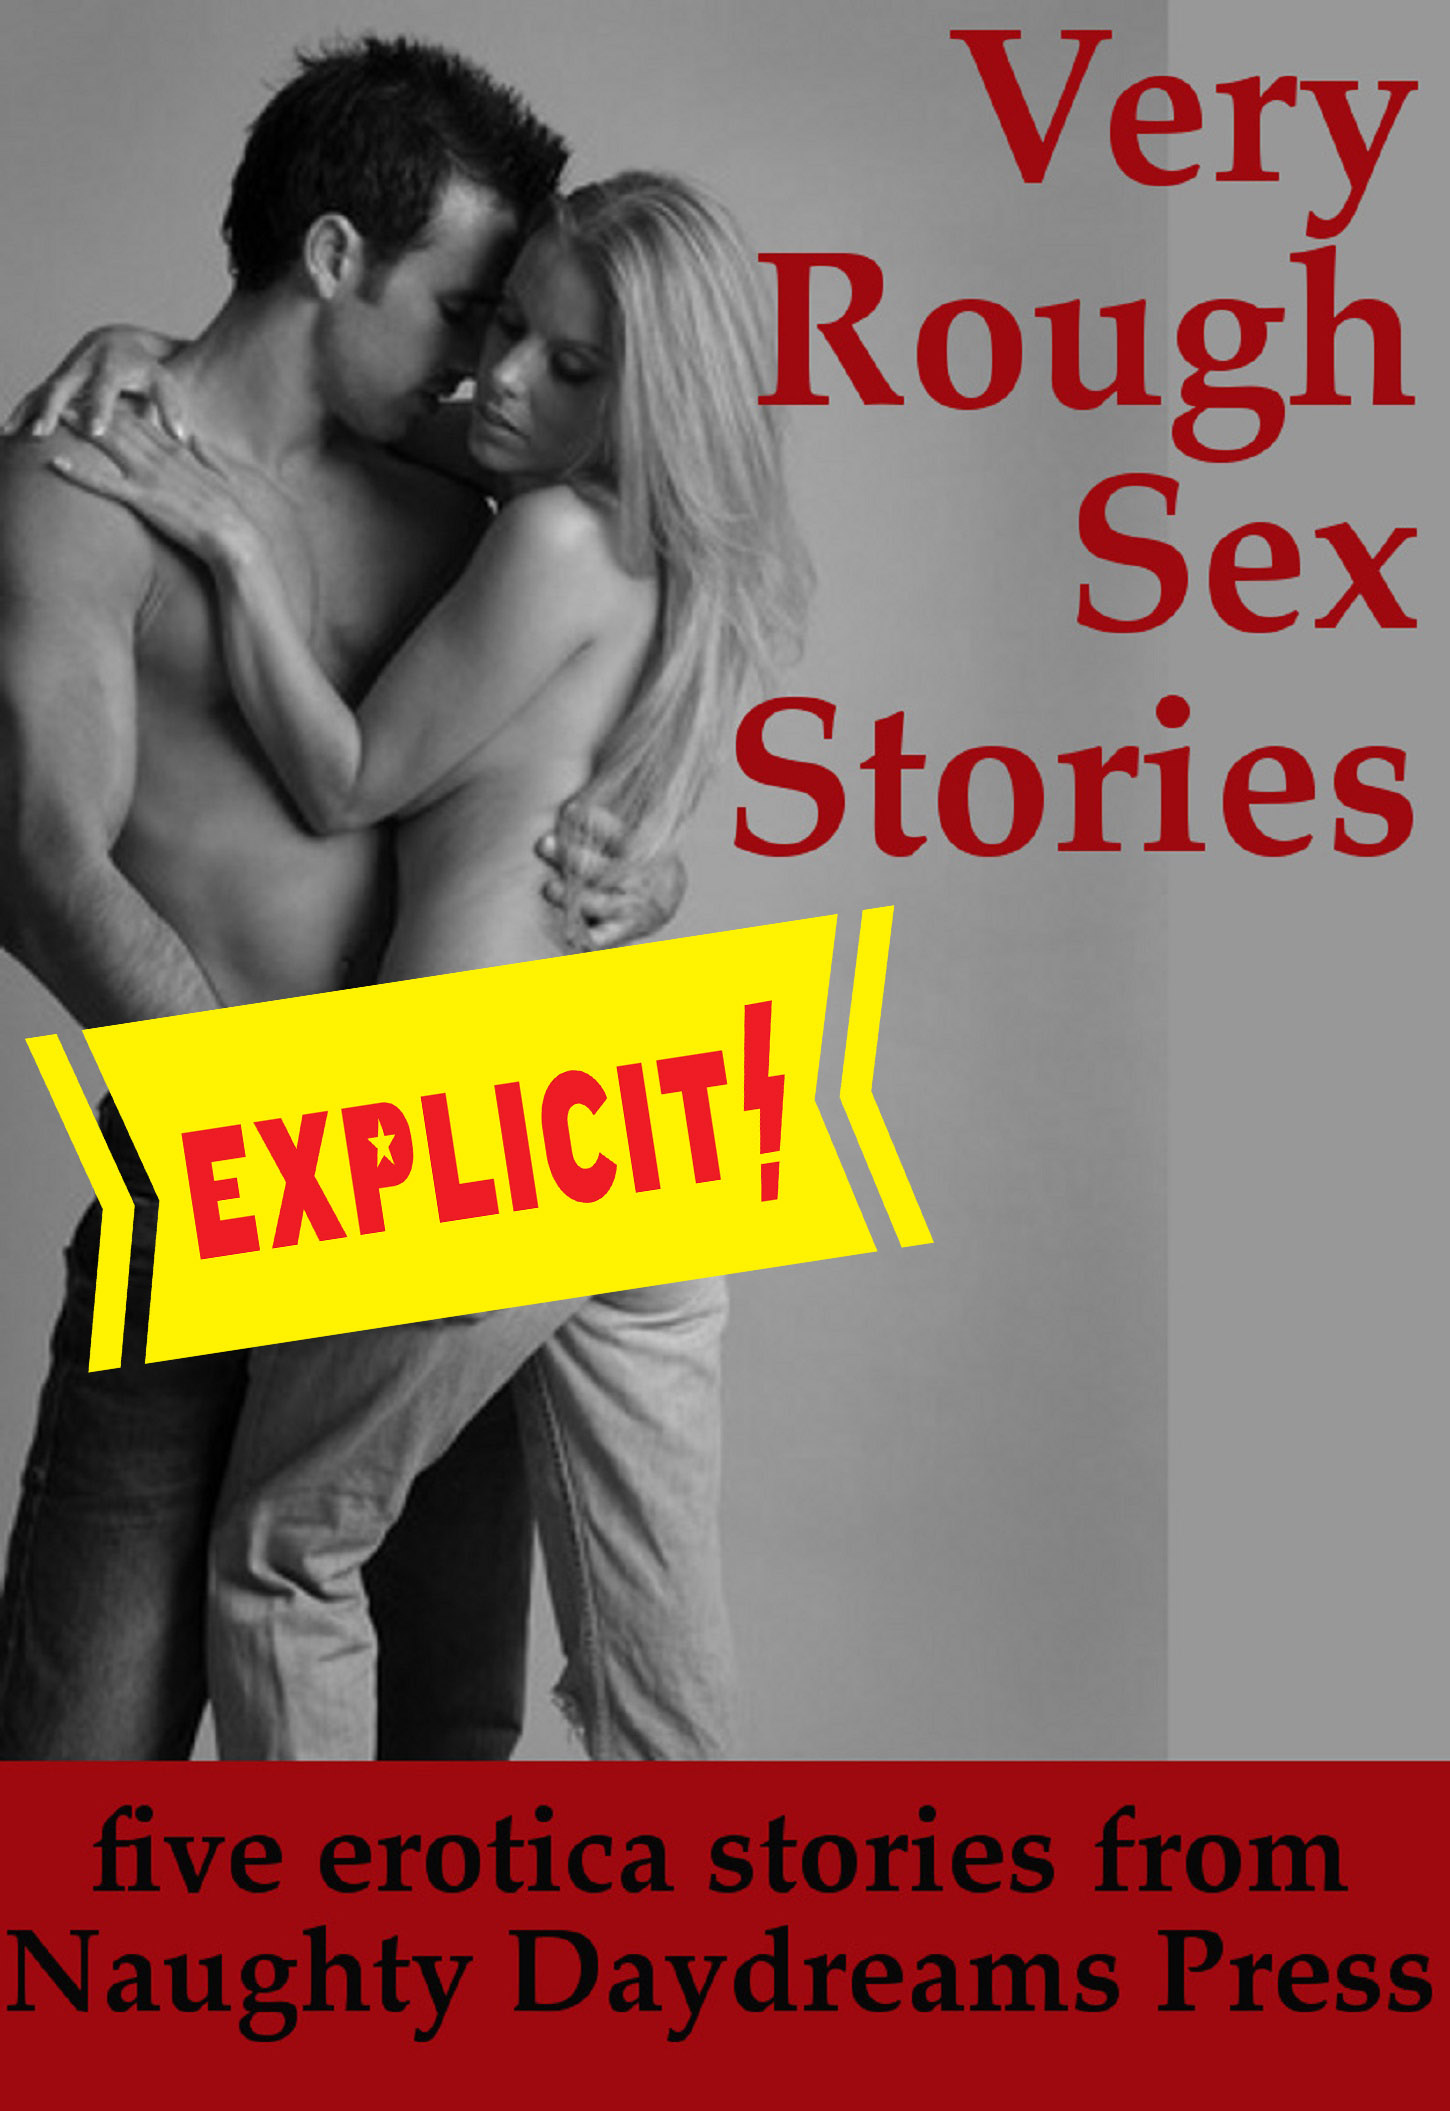 Very Rough Sex Stories